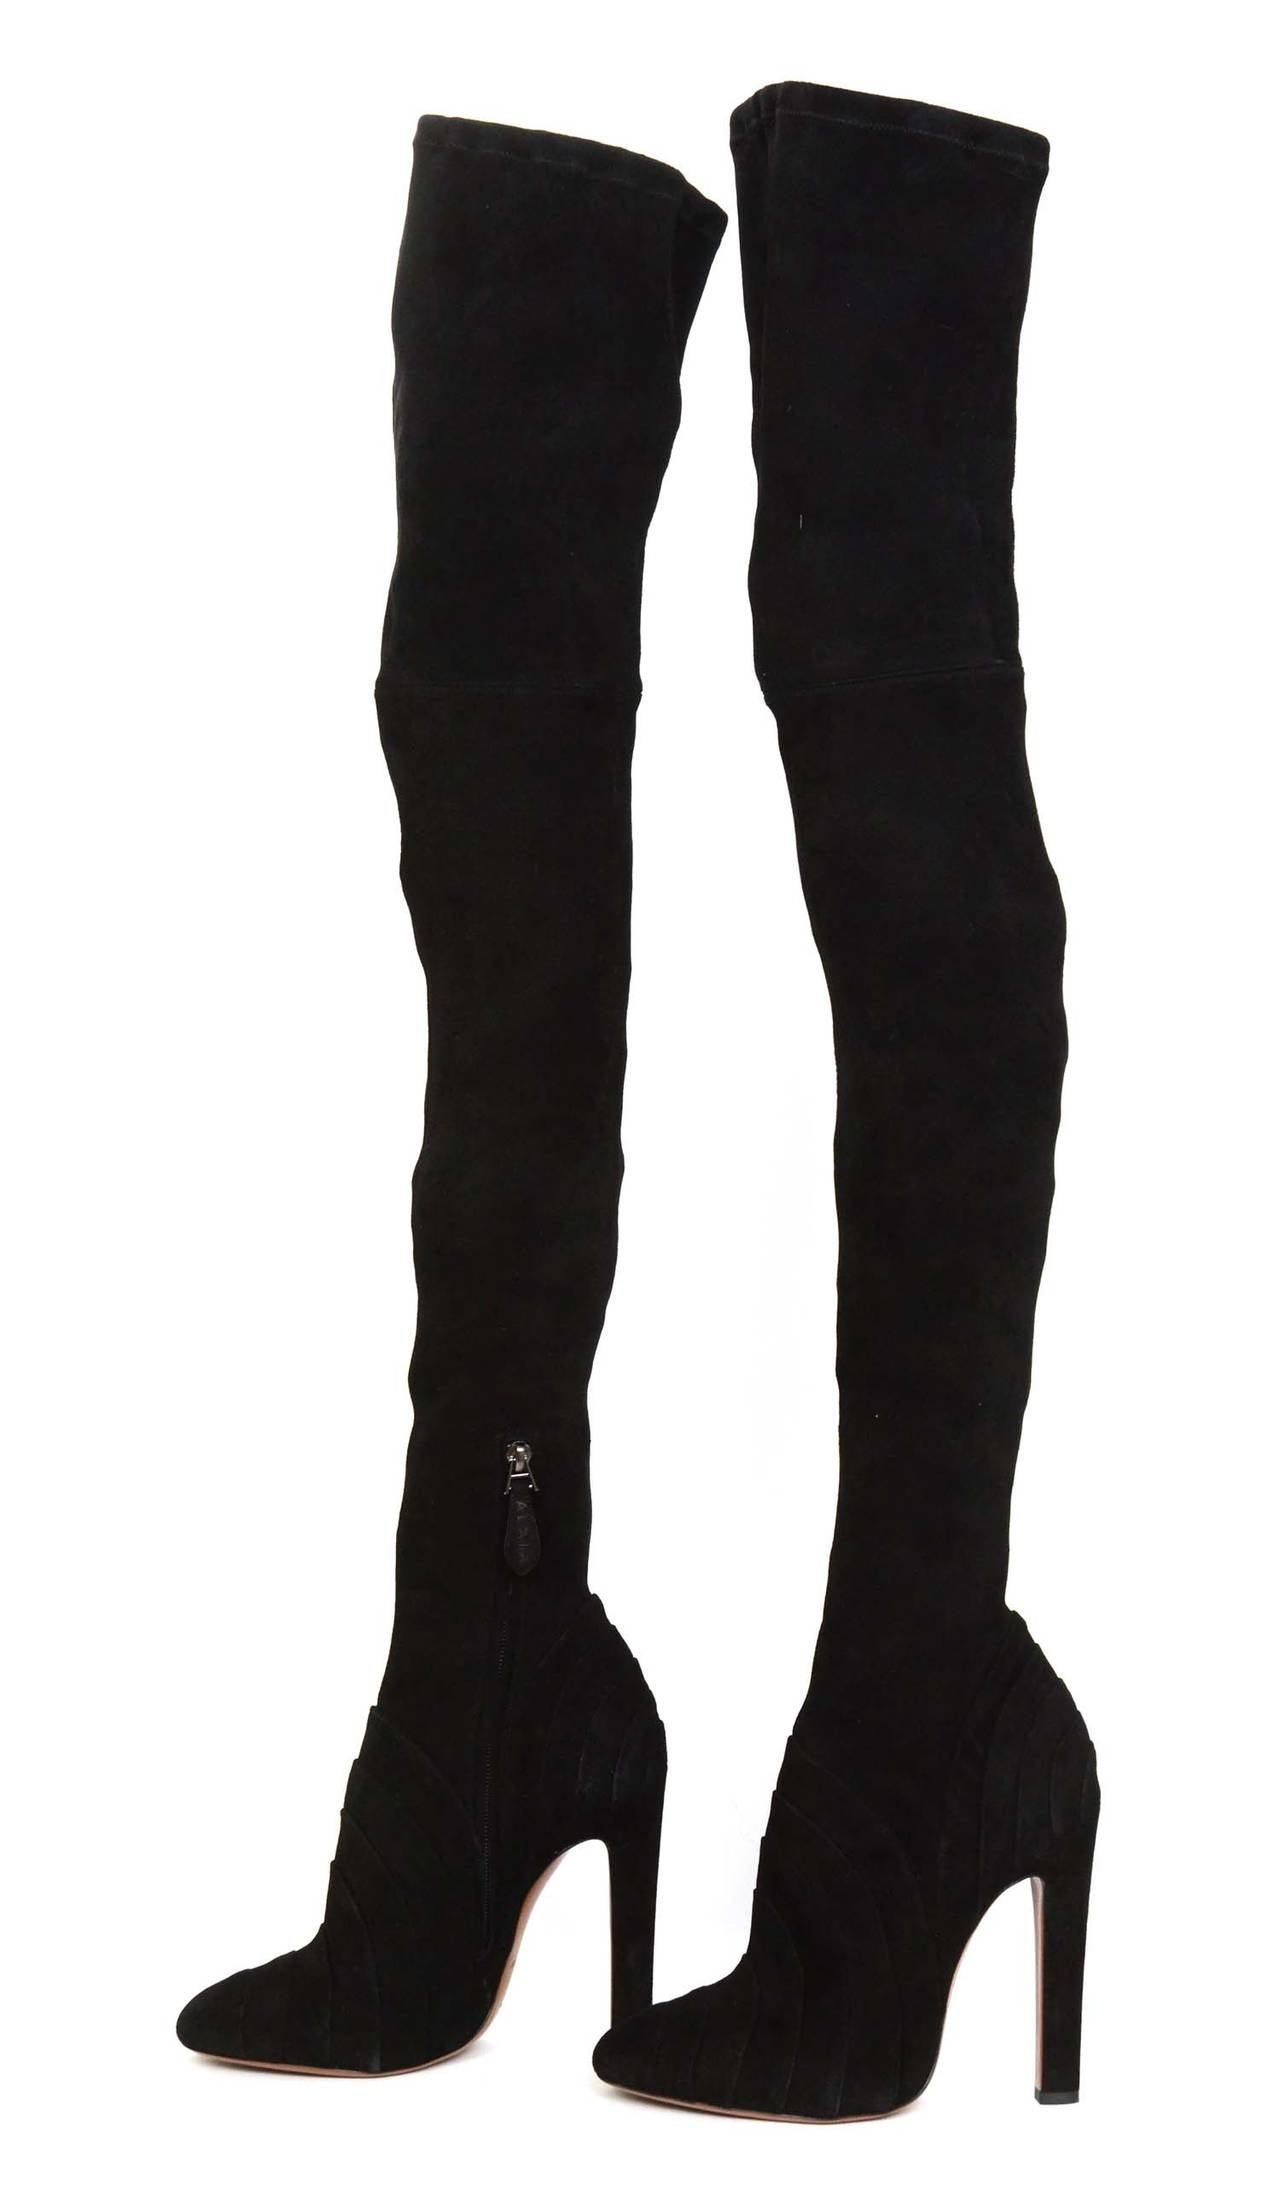 ALAIA Black Stretch-Suede Over-the-Knee Boots sz 40 rt $3,540 at ...